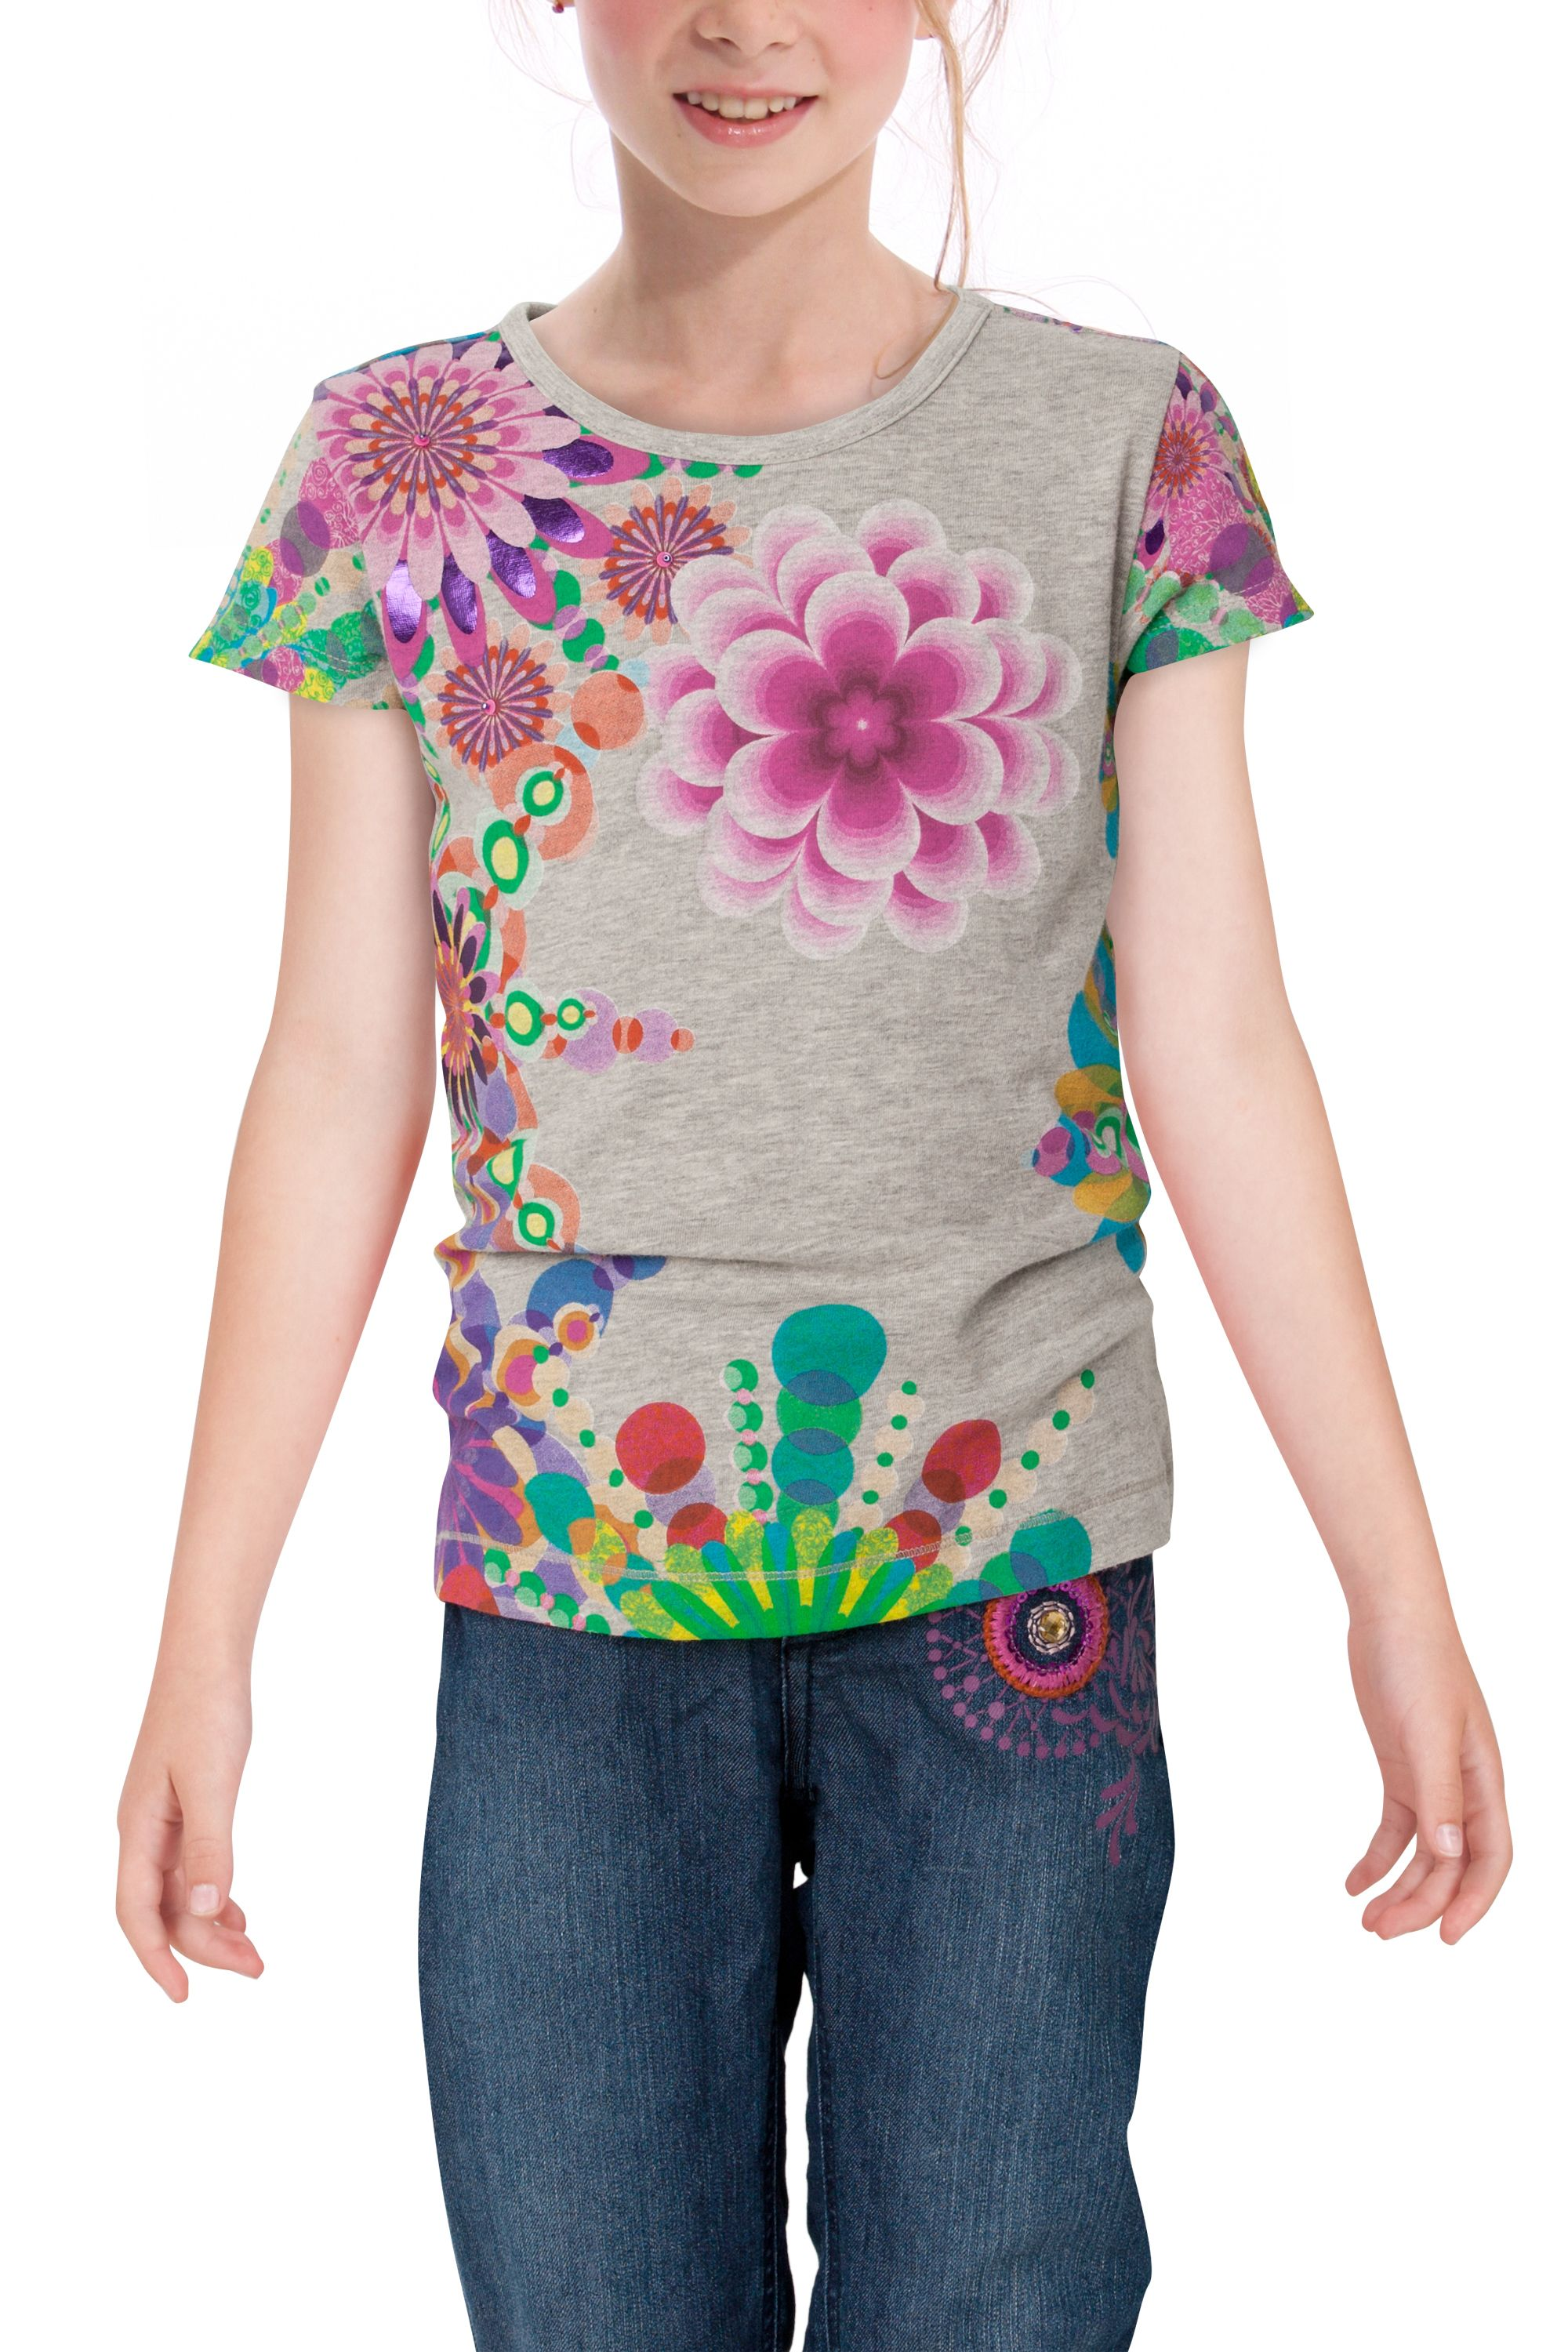 Girls agar t-shirt